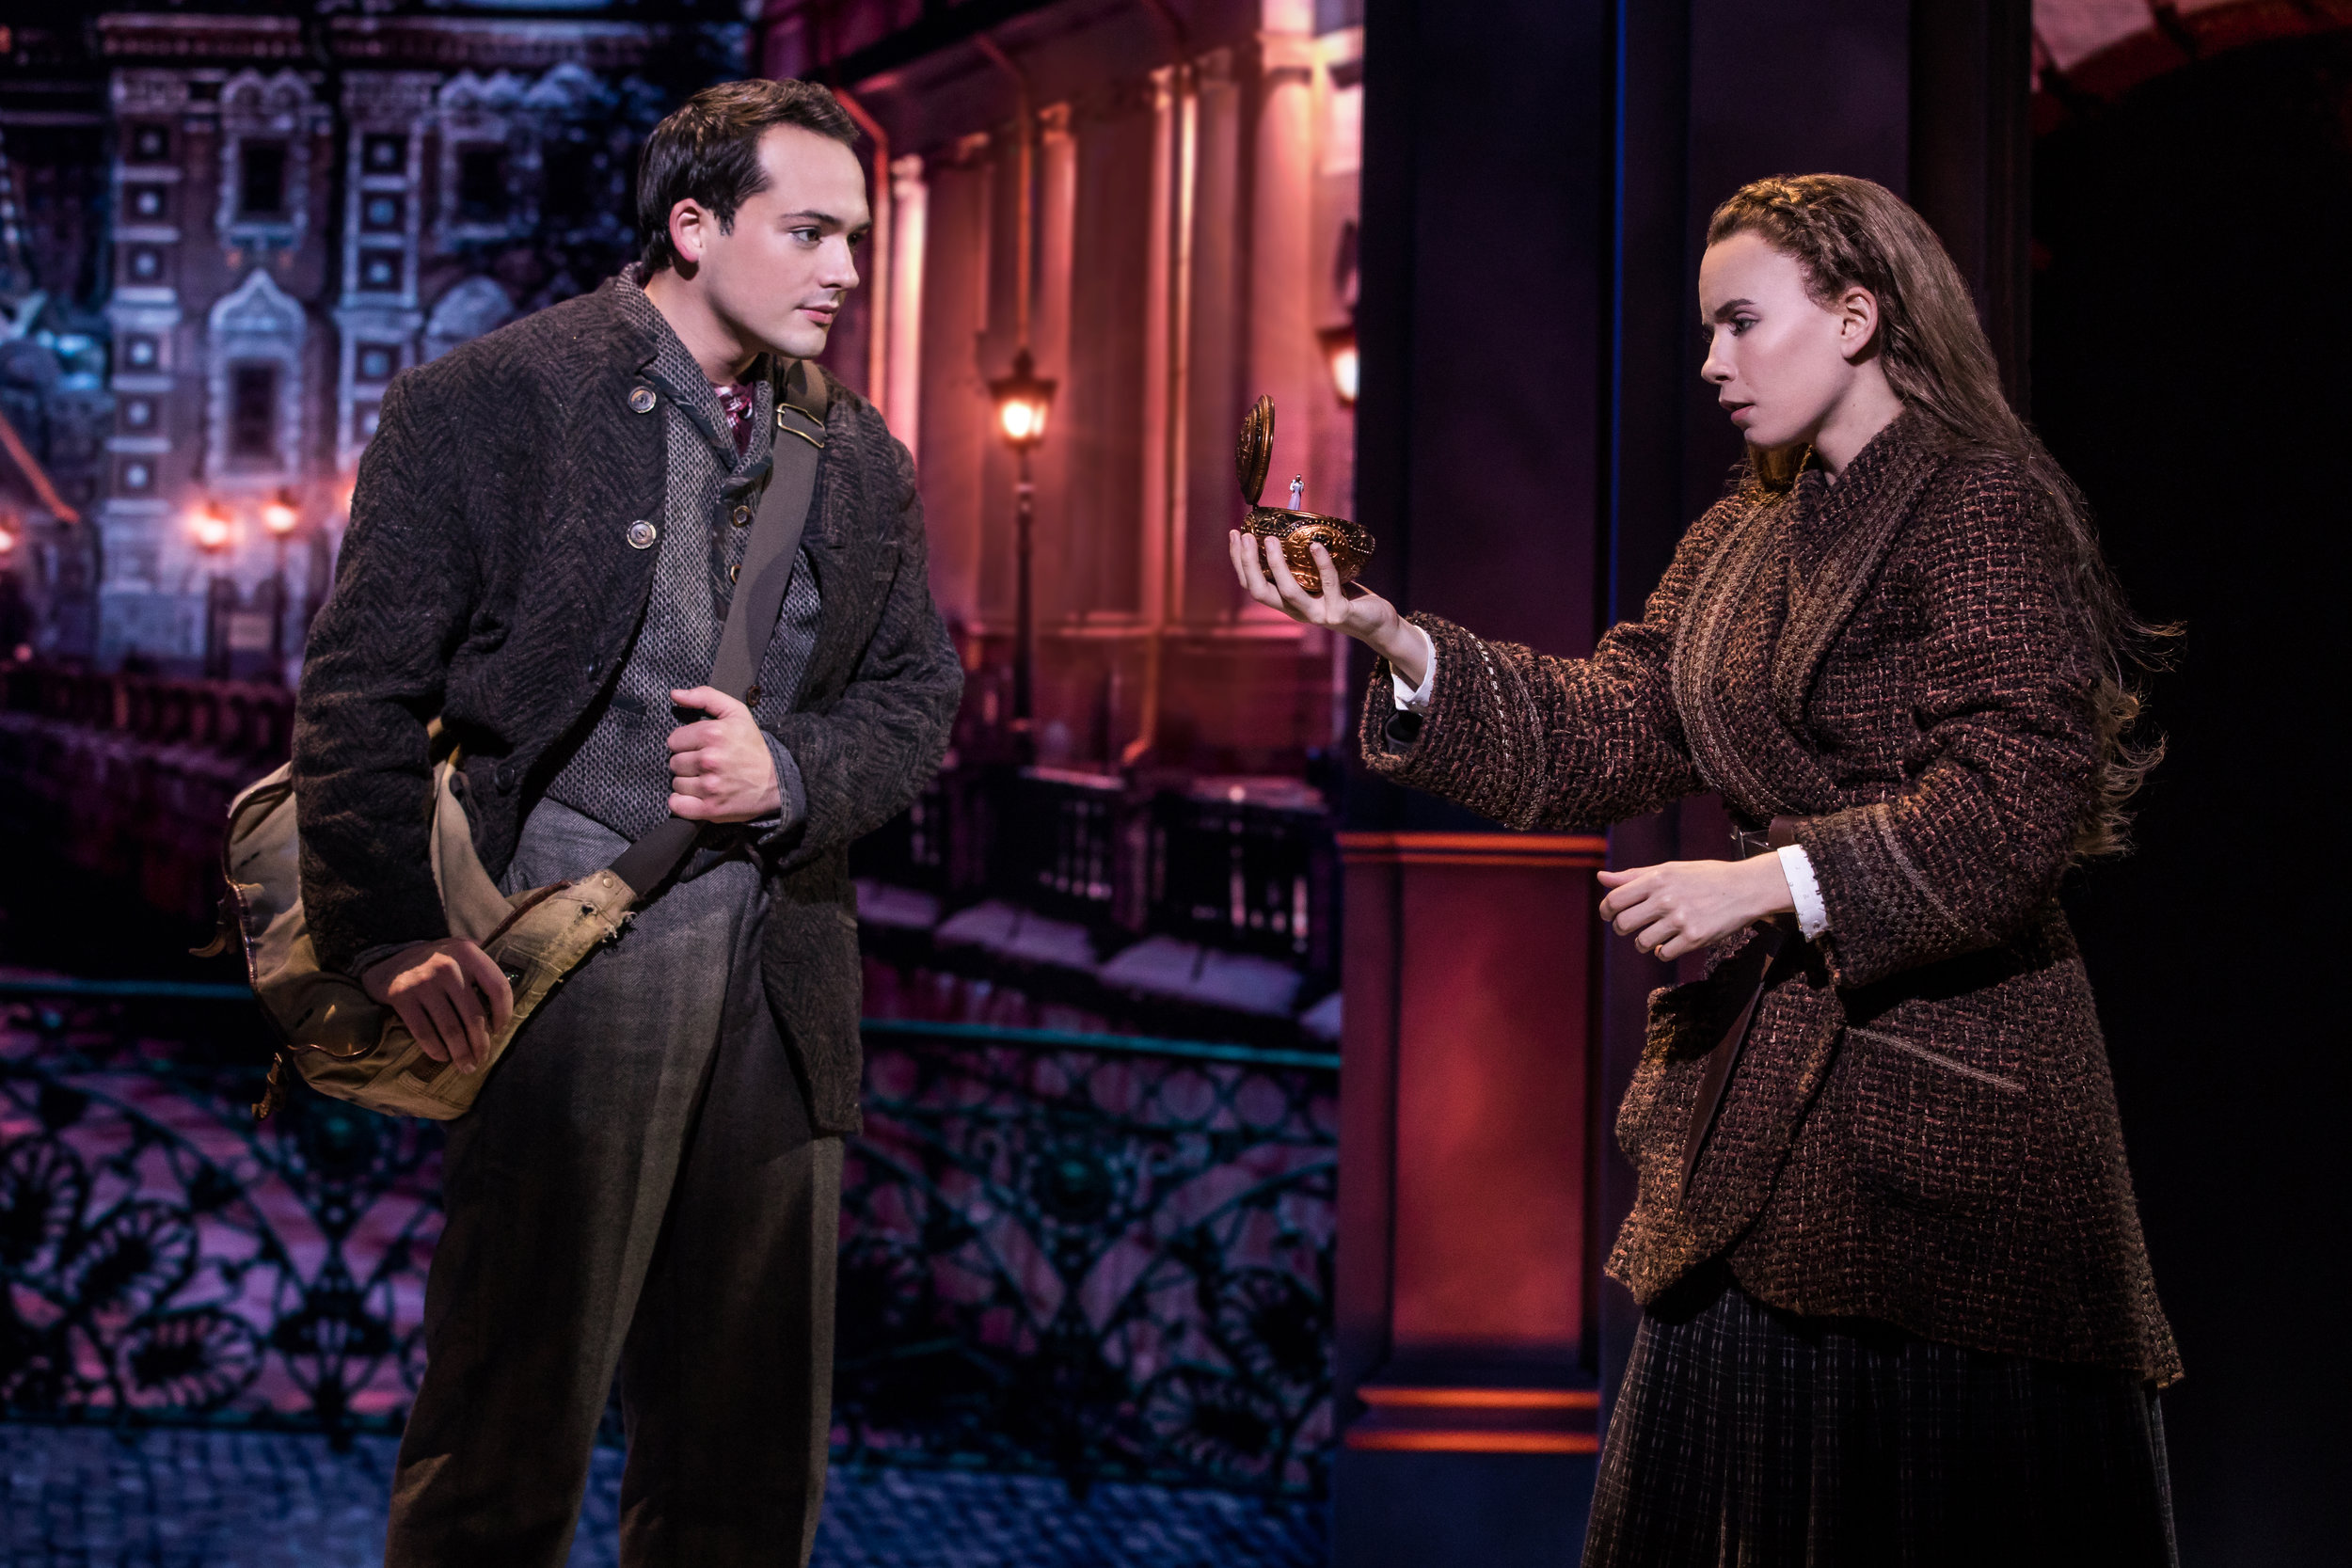 Lila Coogan (Anya) and Stephen Brower (Dmitry) in the National Tour of ANASTASIA. Photo by Matthew Murphy, MurphyMade.